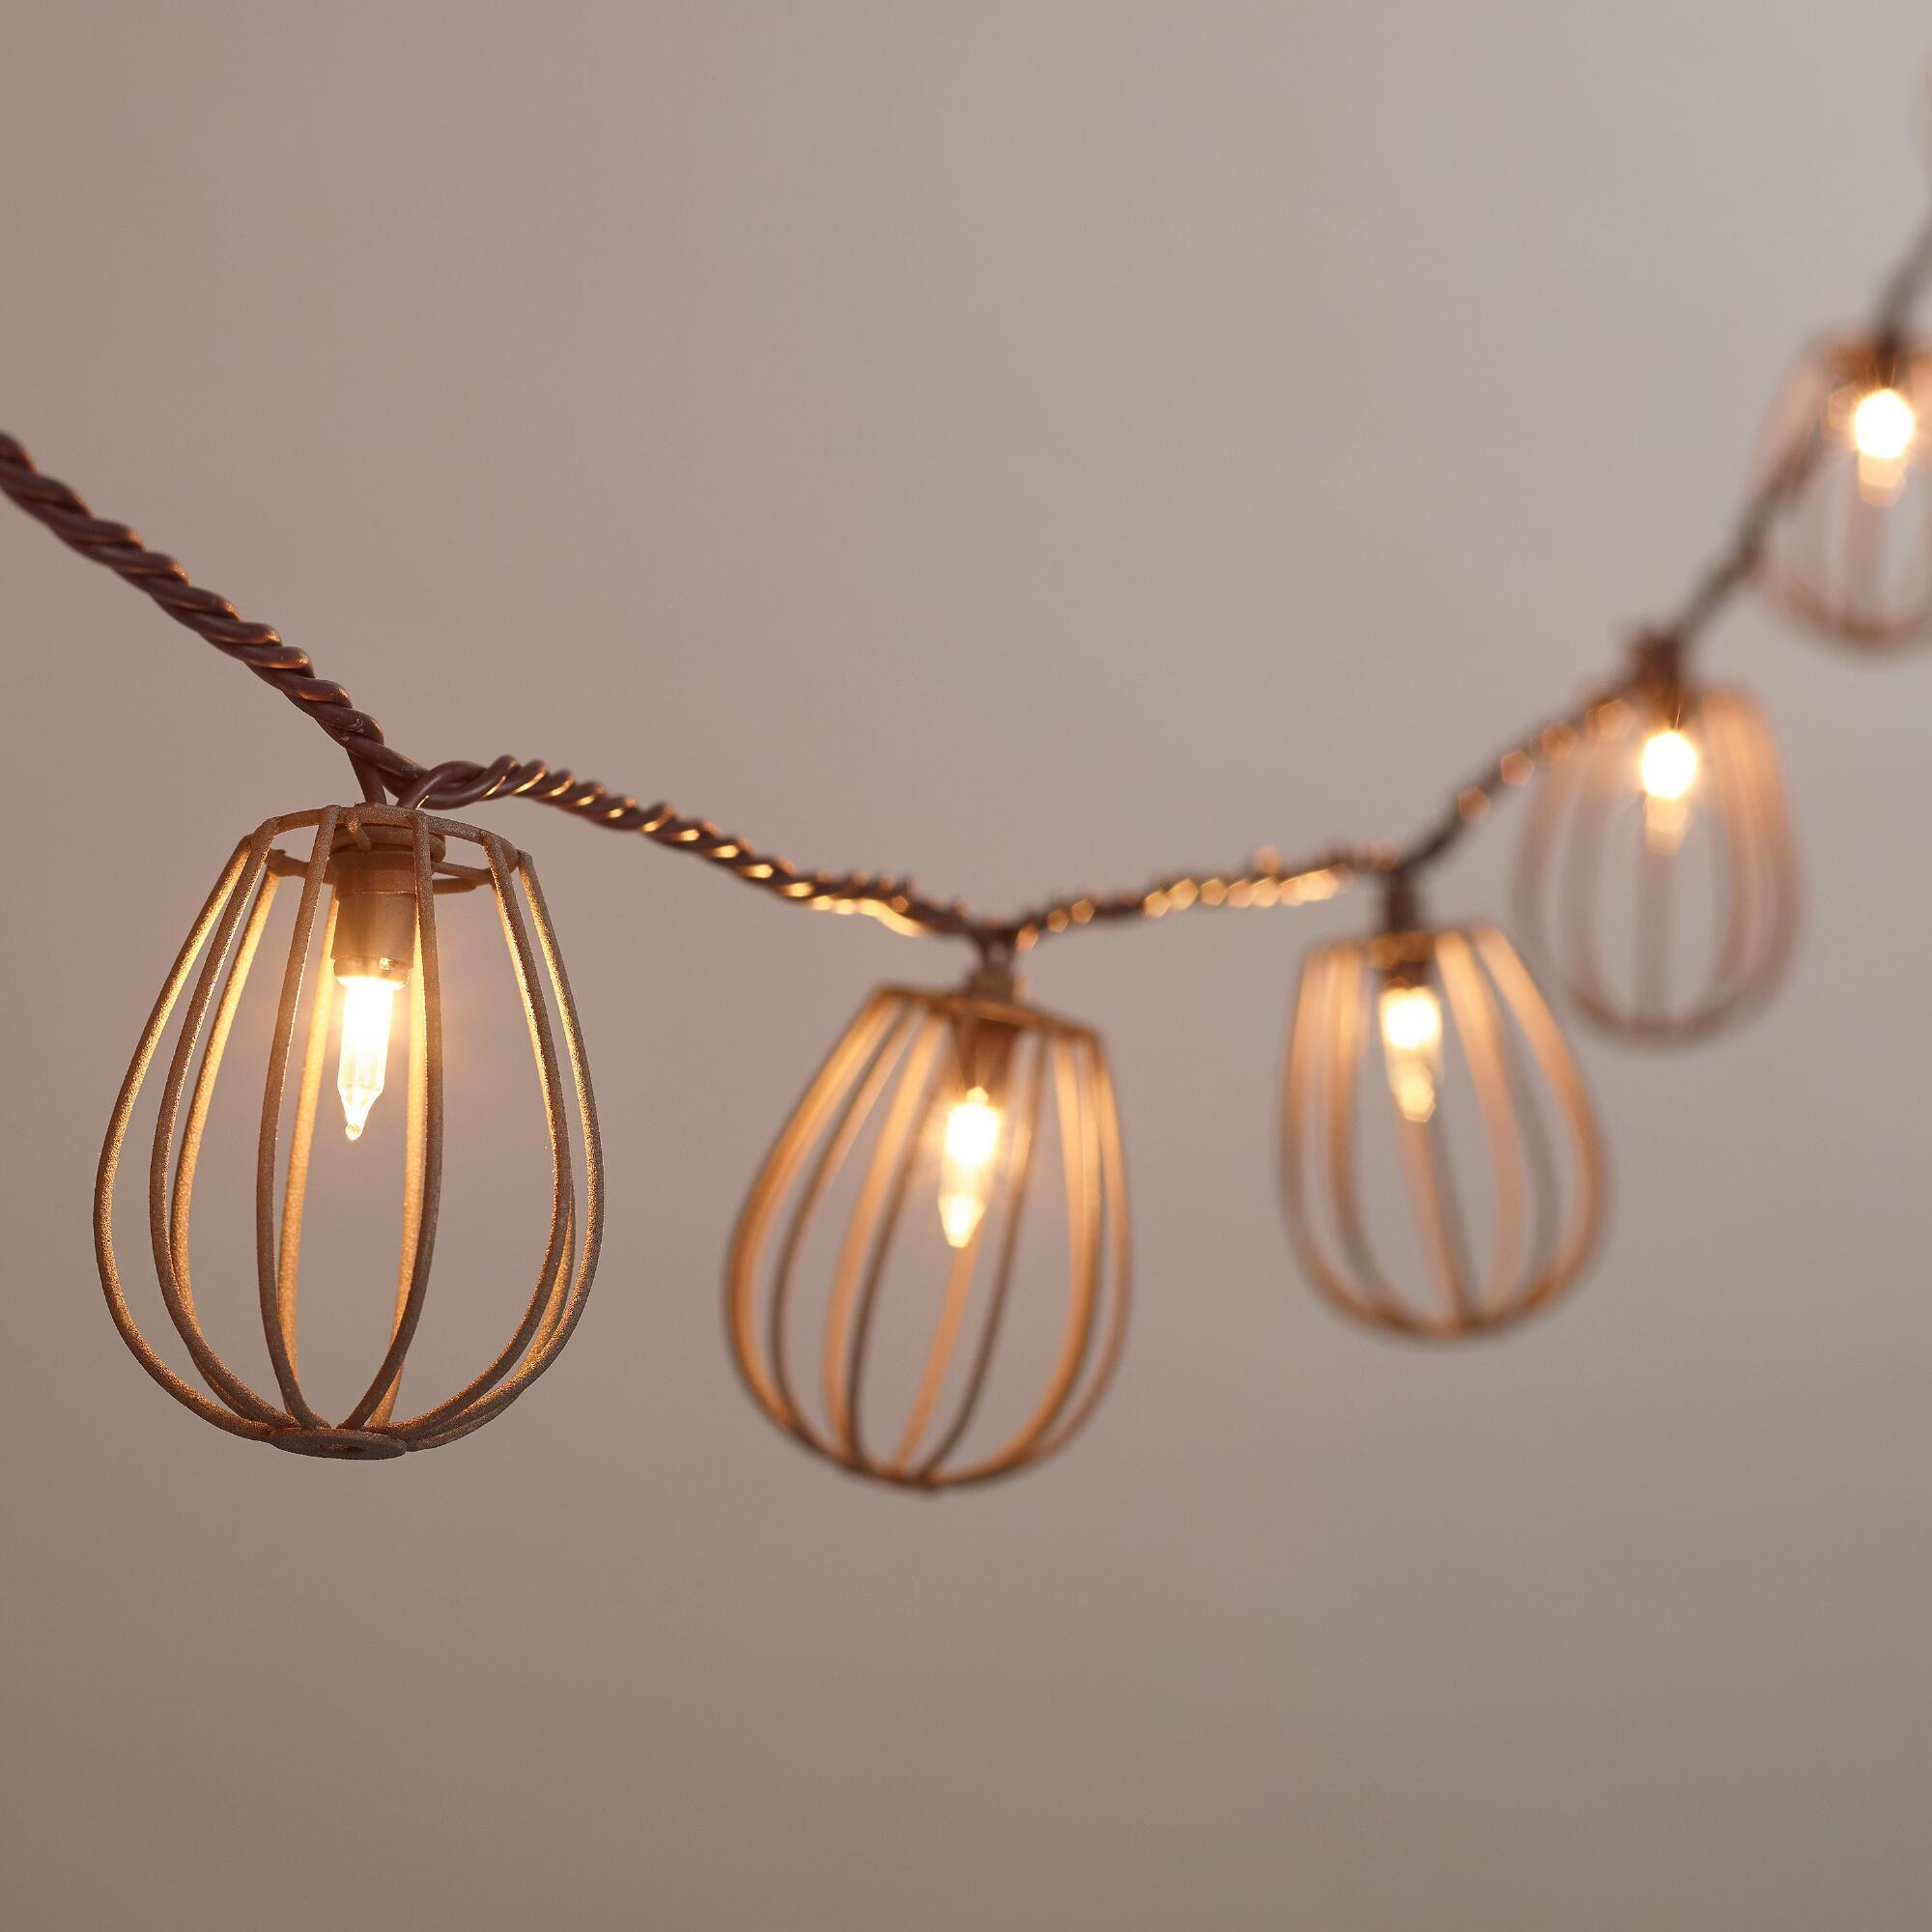 Cage String Lights Kmart : Rustic Wire Cage 10-Bulb String Lights from Cost Plus World